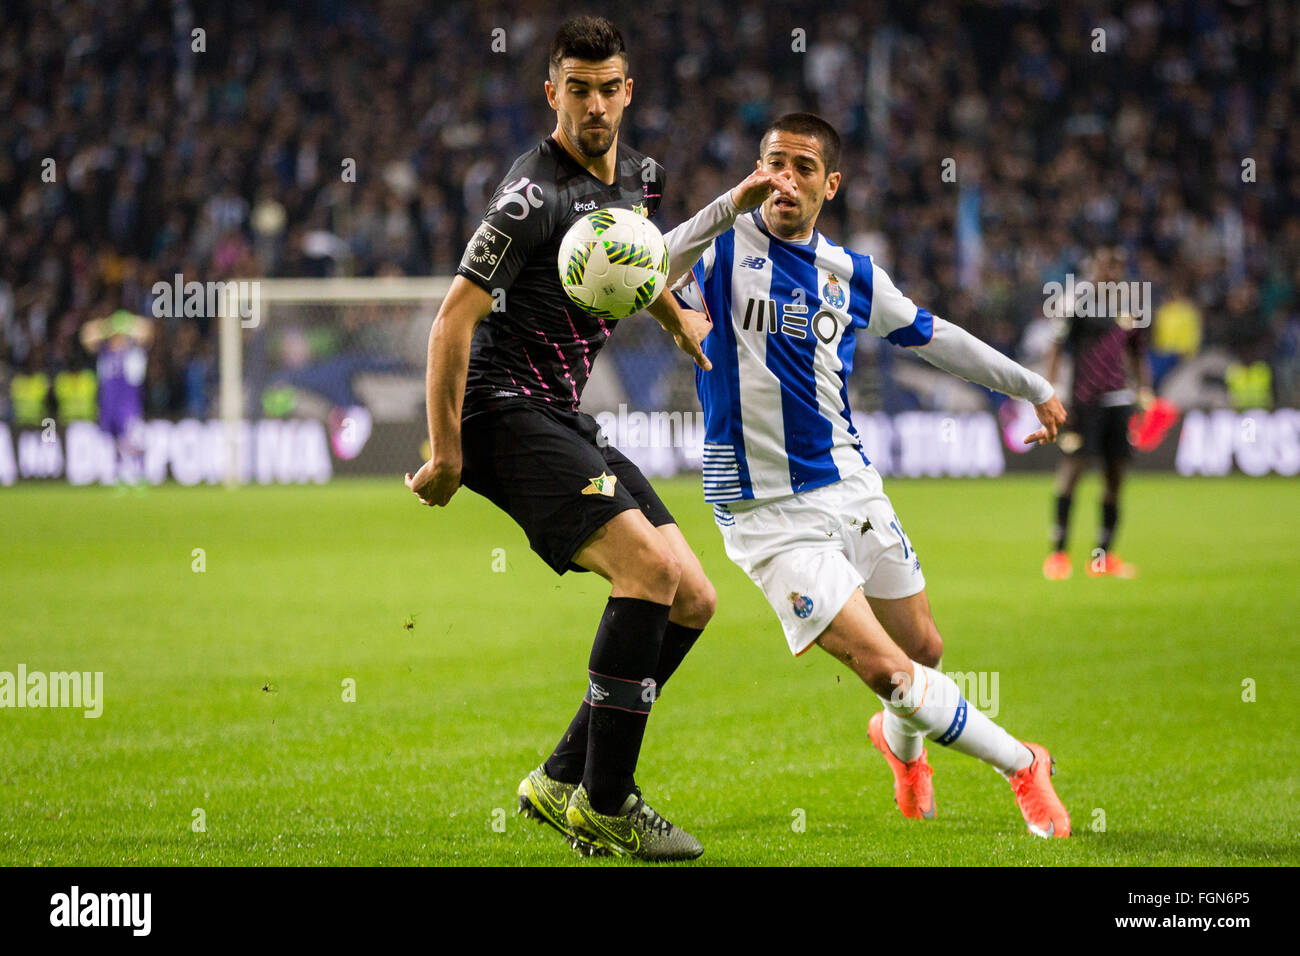 Dragon Stadium, Portugal. 21st February, 2016. FC Porto's player Evandro during the Premier League 2015/16 match - Stock Image